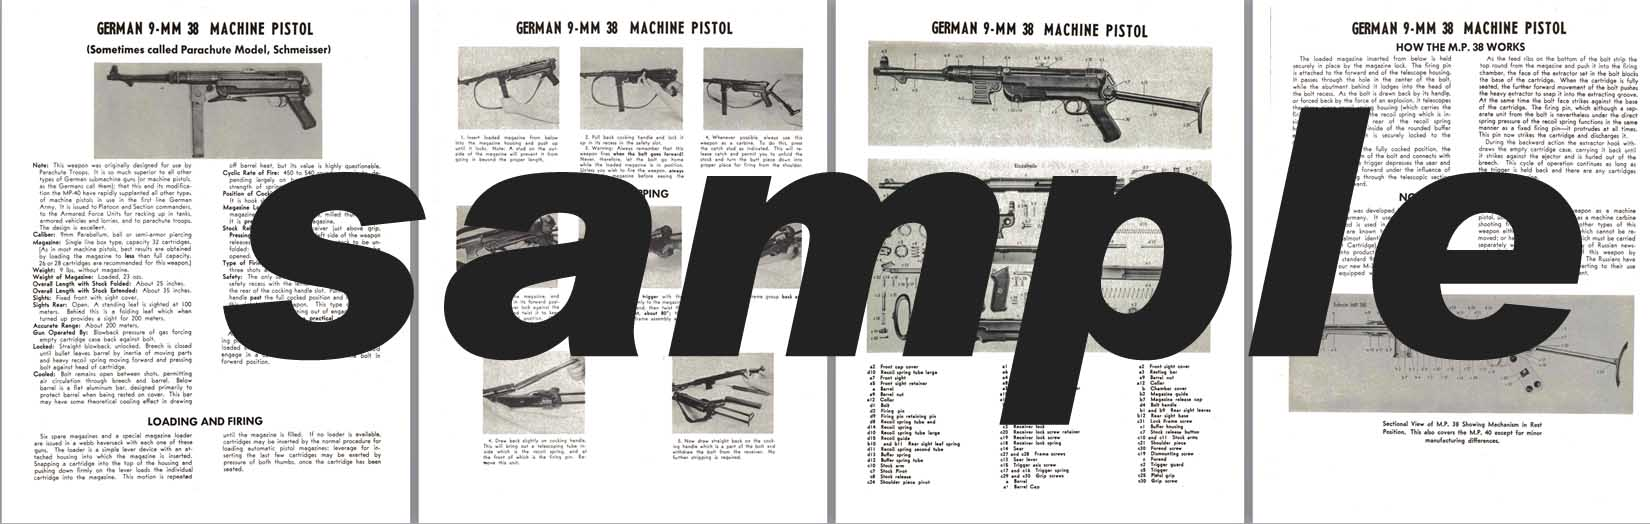 MP38 German 9mm 38 Machine Pistol Manual